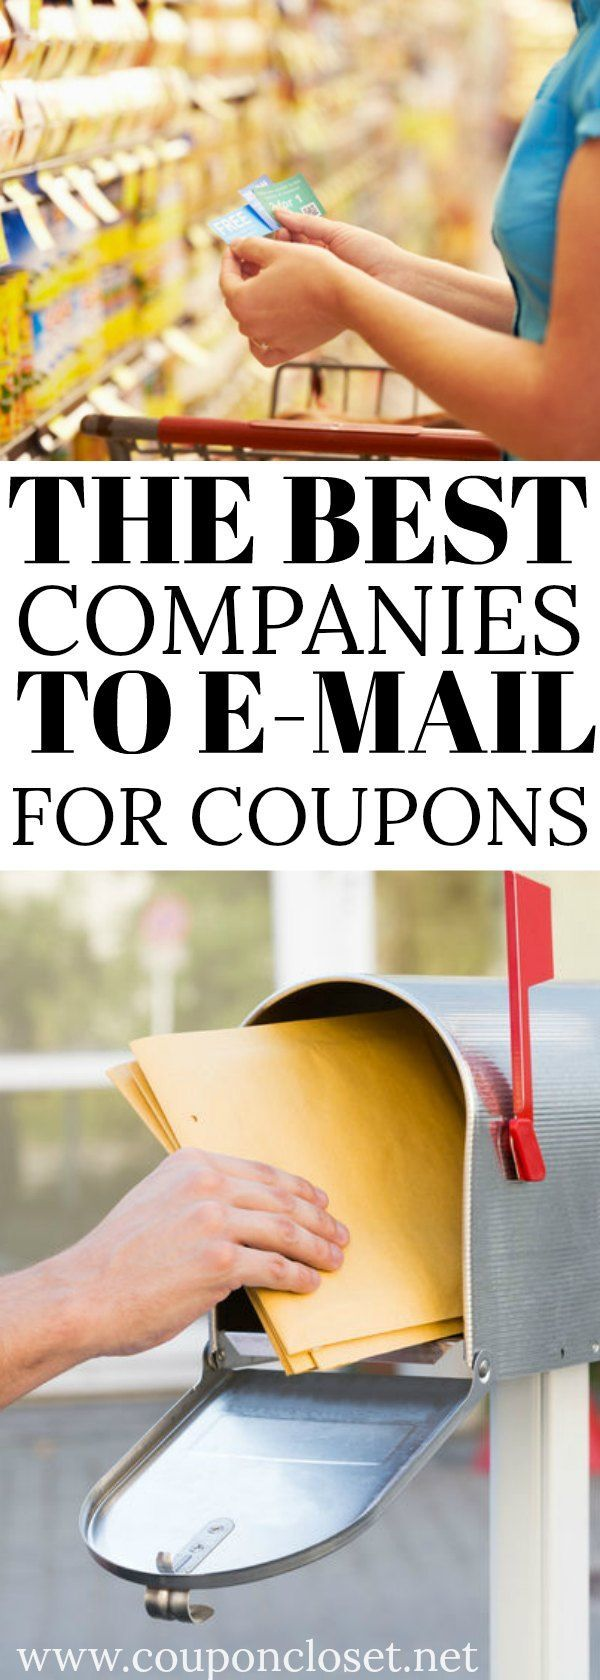 Check out the best companies to e-mail for coupons. You can get free grocery coupons by mail. Find the best companies to e-mail for coupons here.